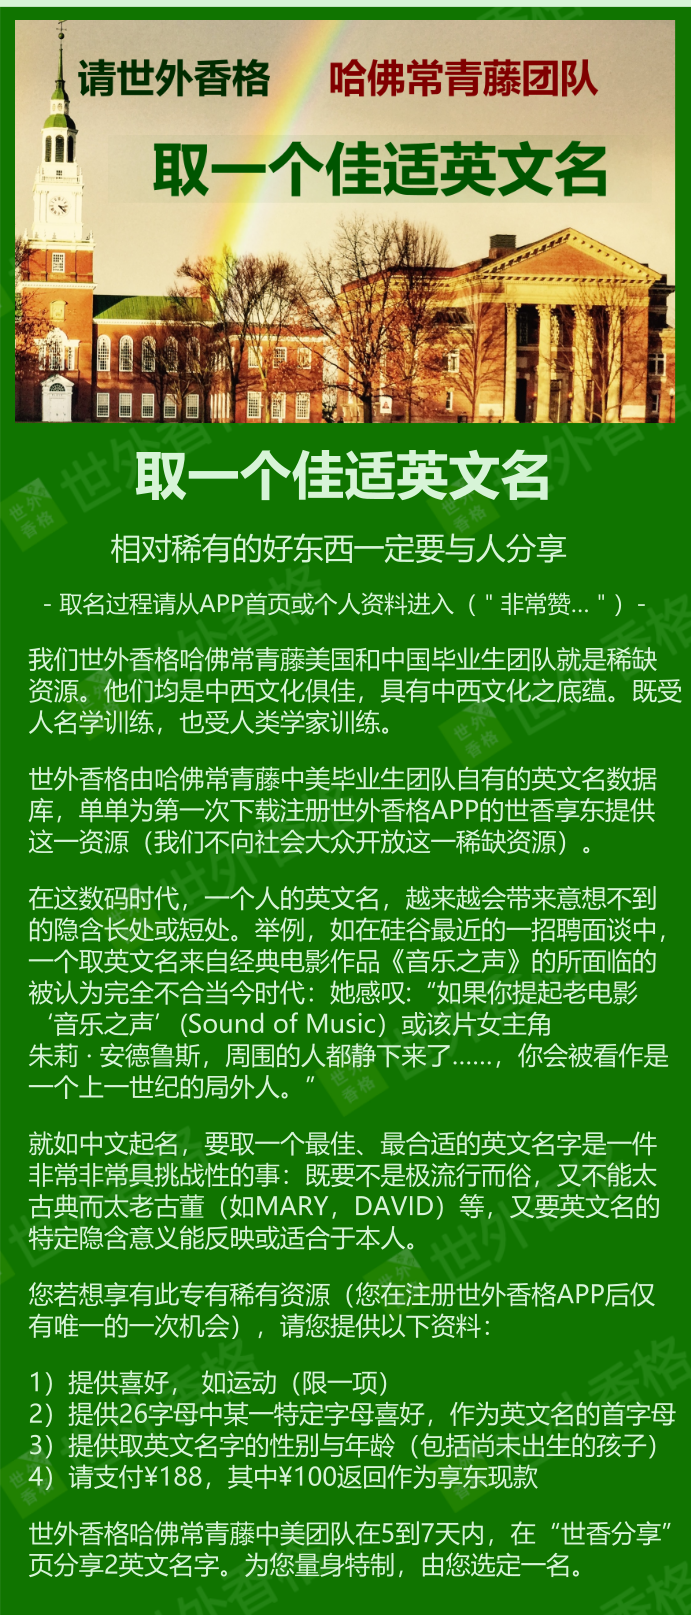 http://www.swxiangge.com/data/upload/shop/article/06178107352792744.png